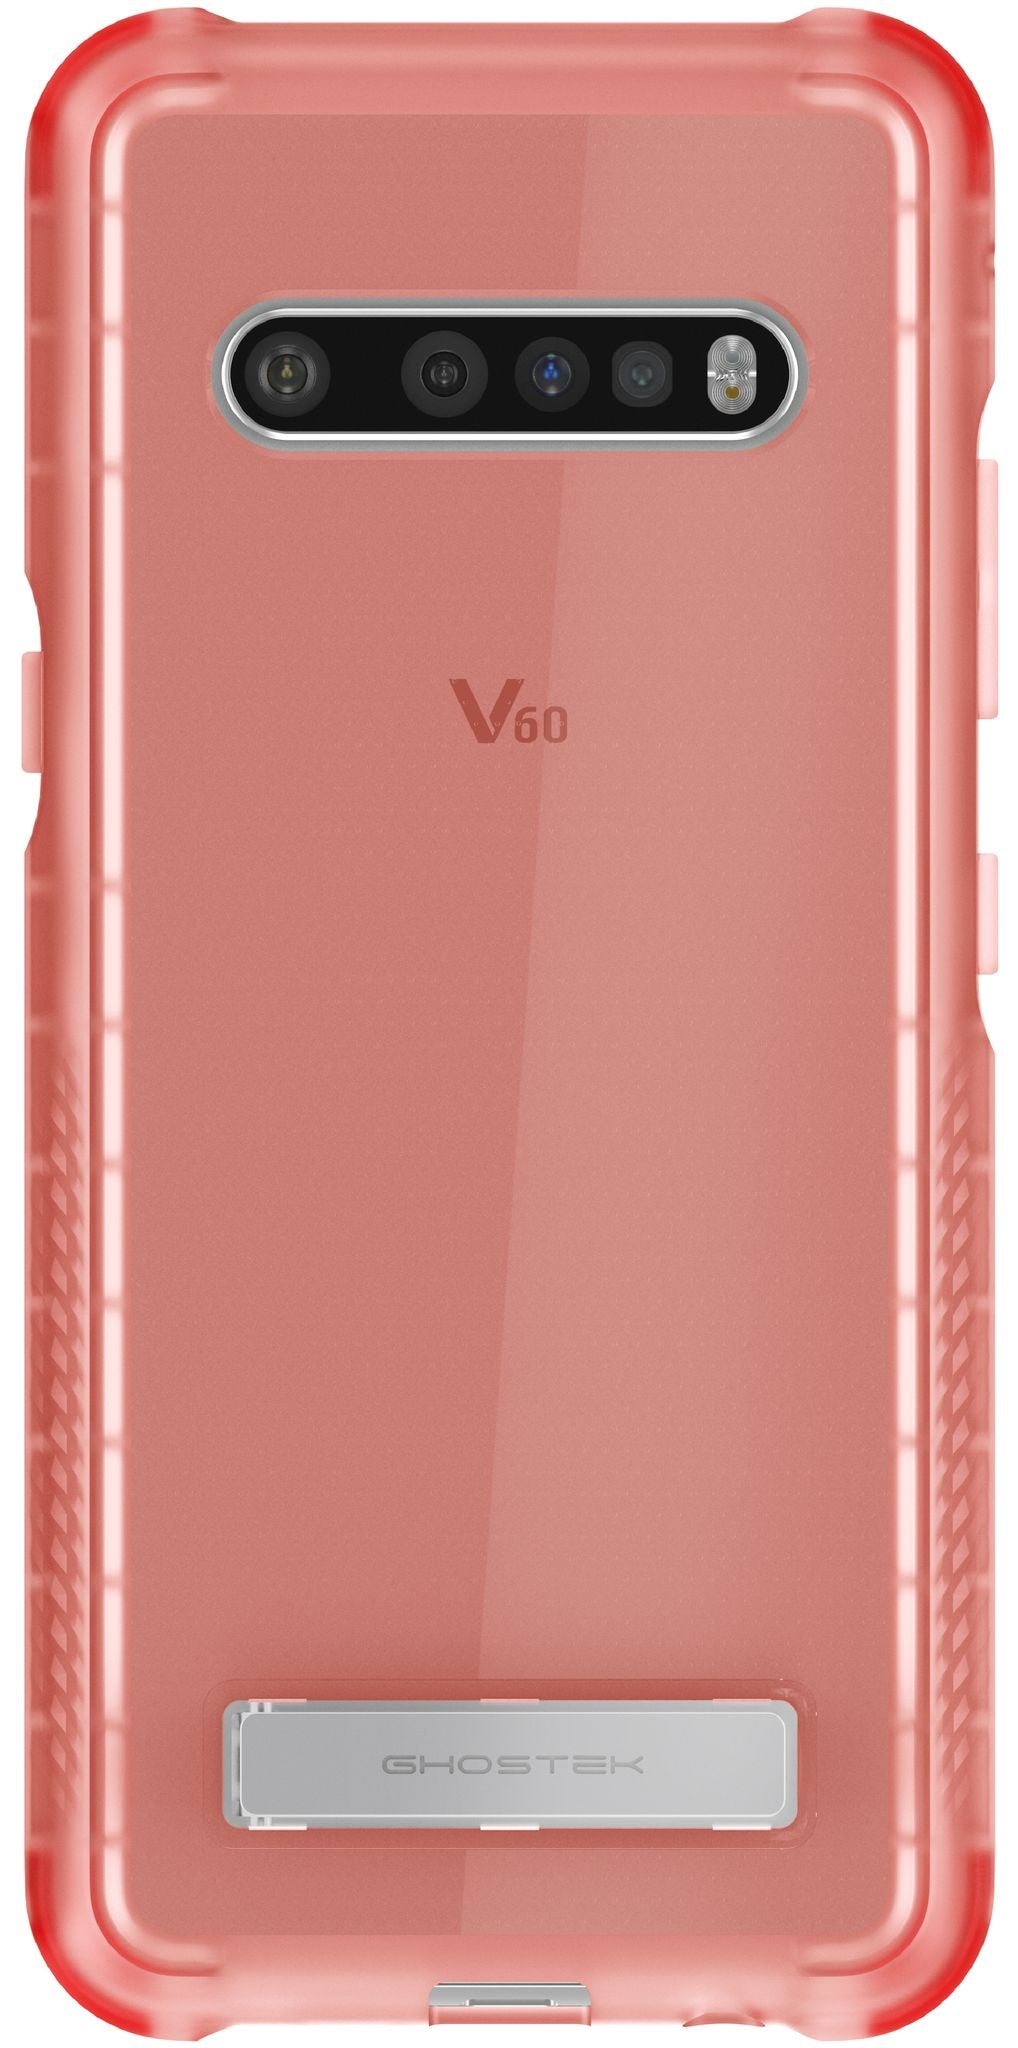 LG V60 ThinQ Case | COVERT 4 Case | UVIYO CASES , LG V60 ThinQ Cases , GHOSTEK - UVIYO